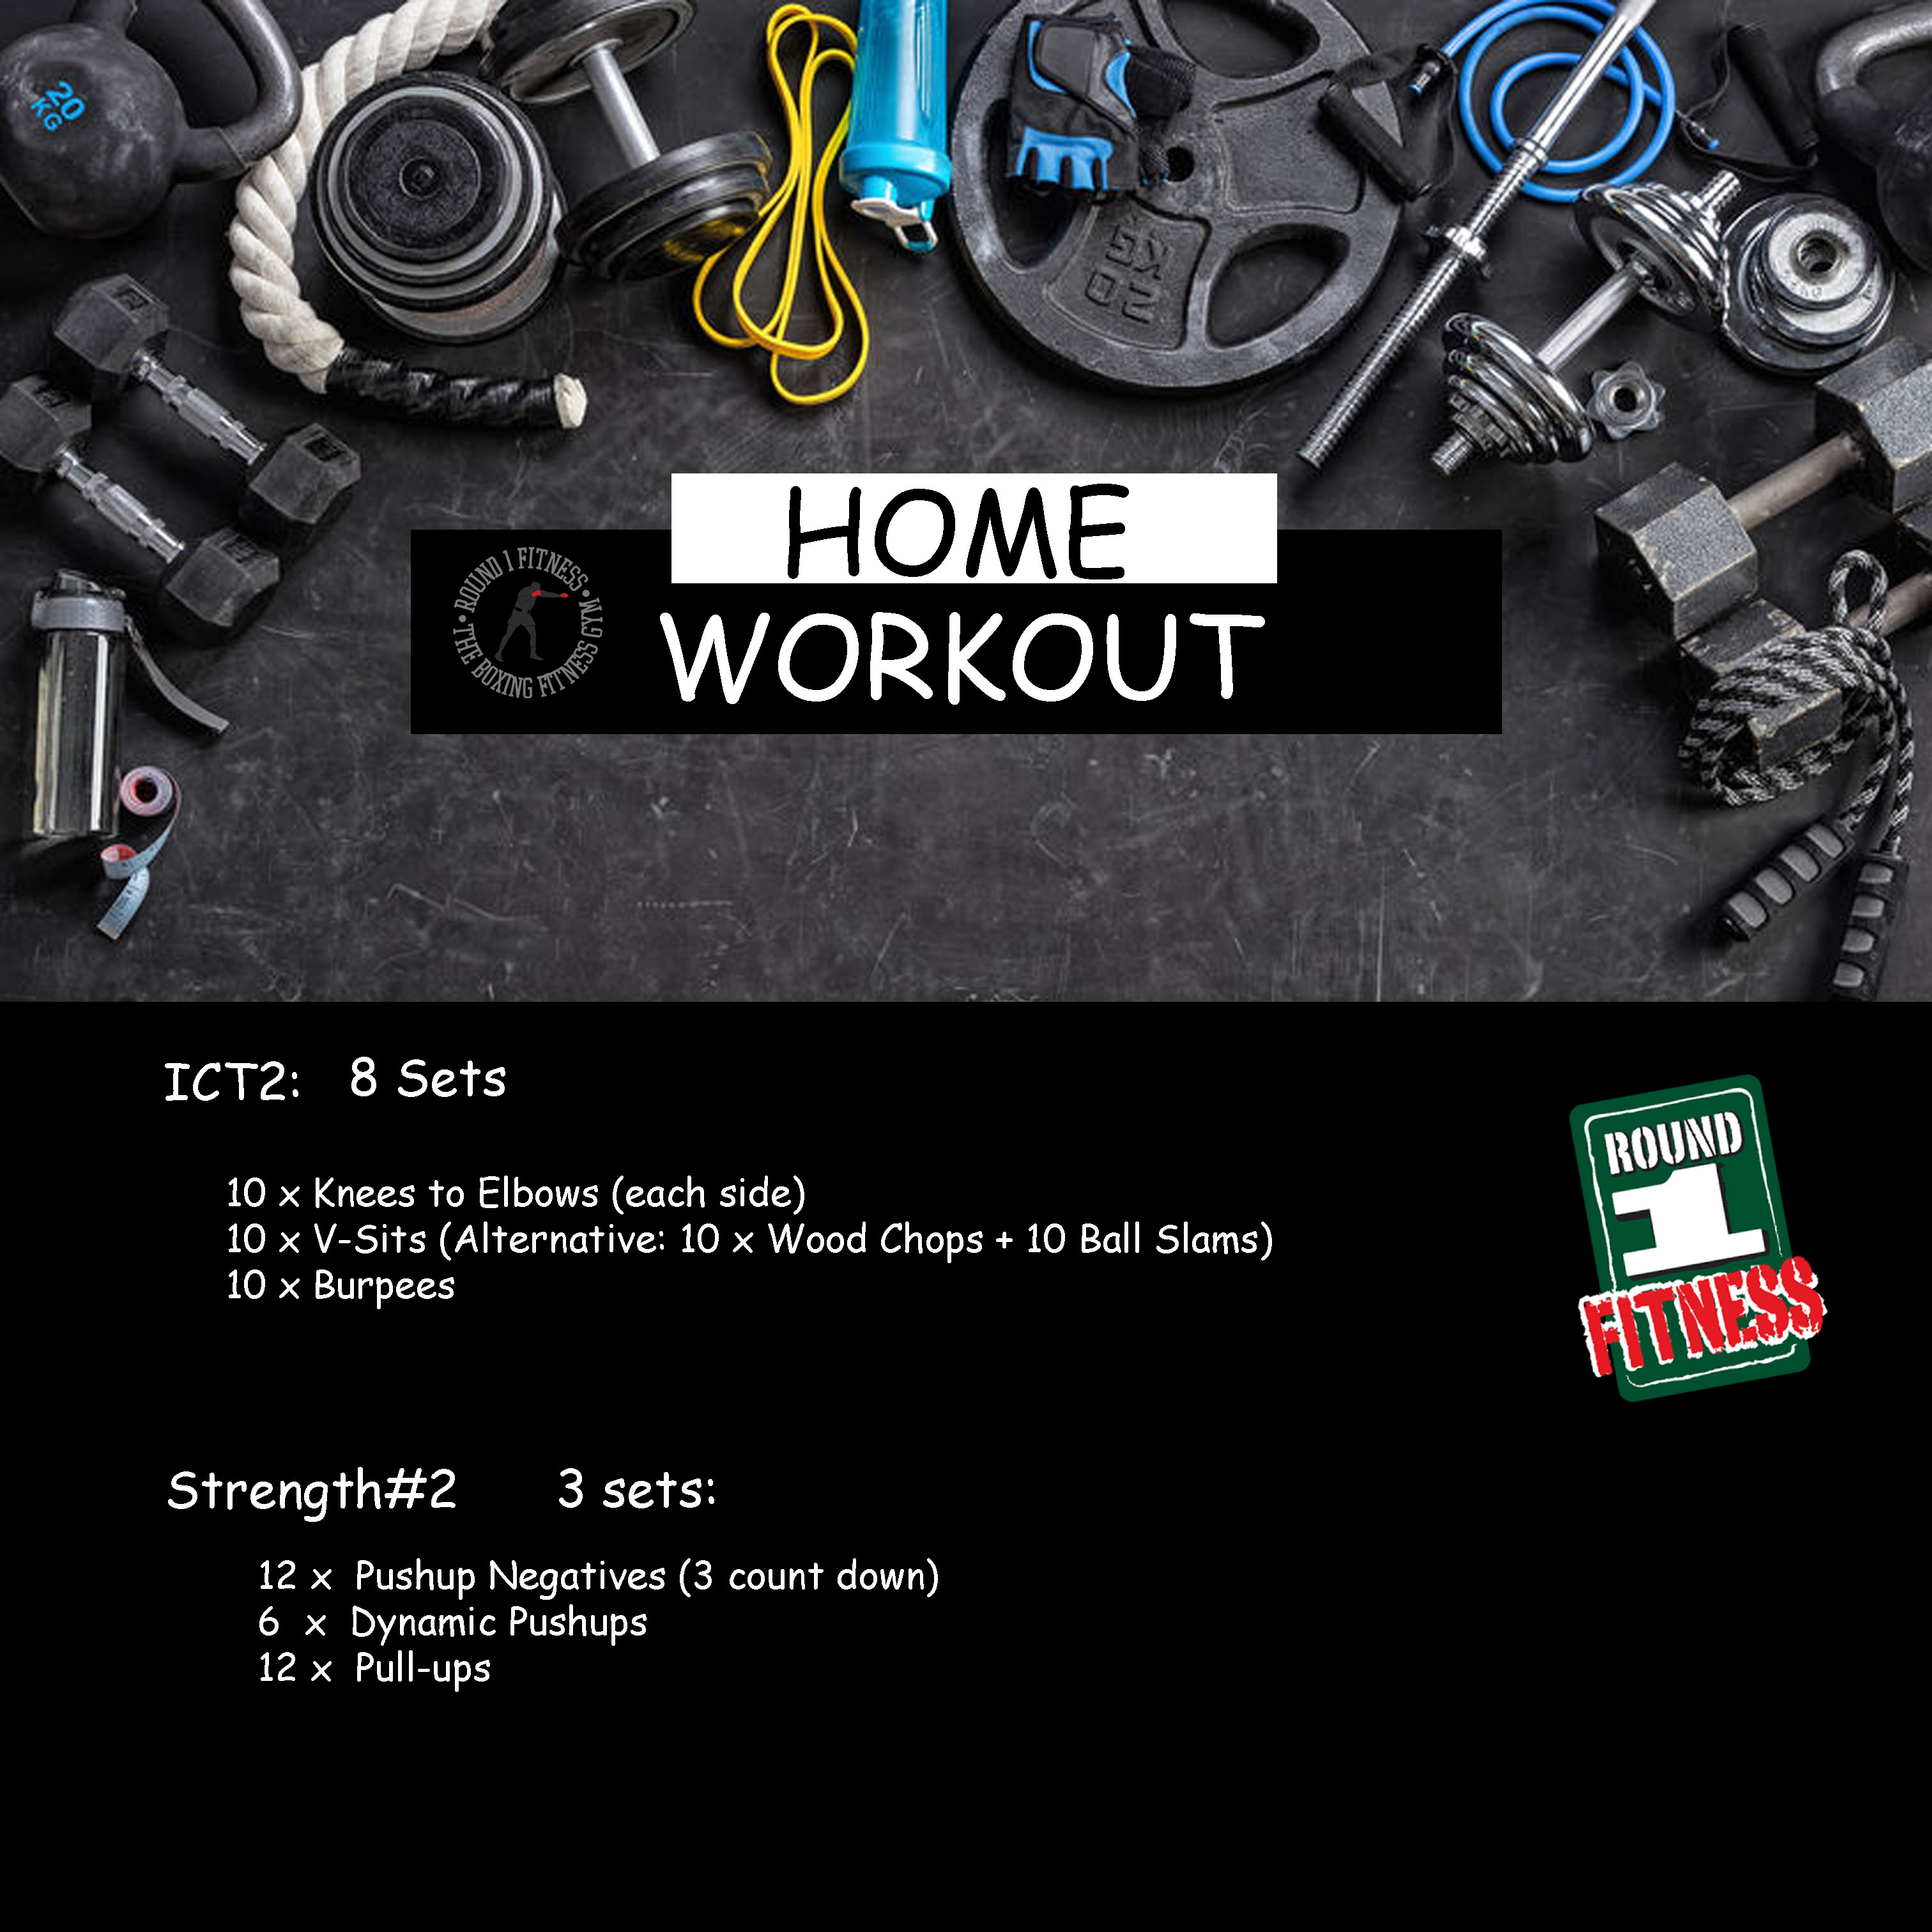 Home Workout:  Monday, May 4th